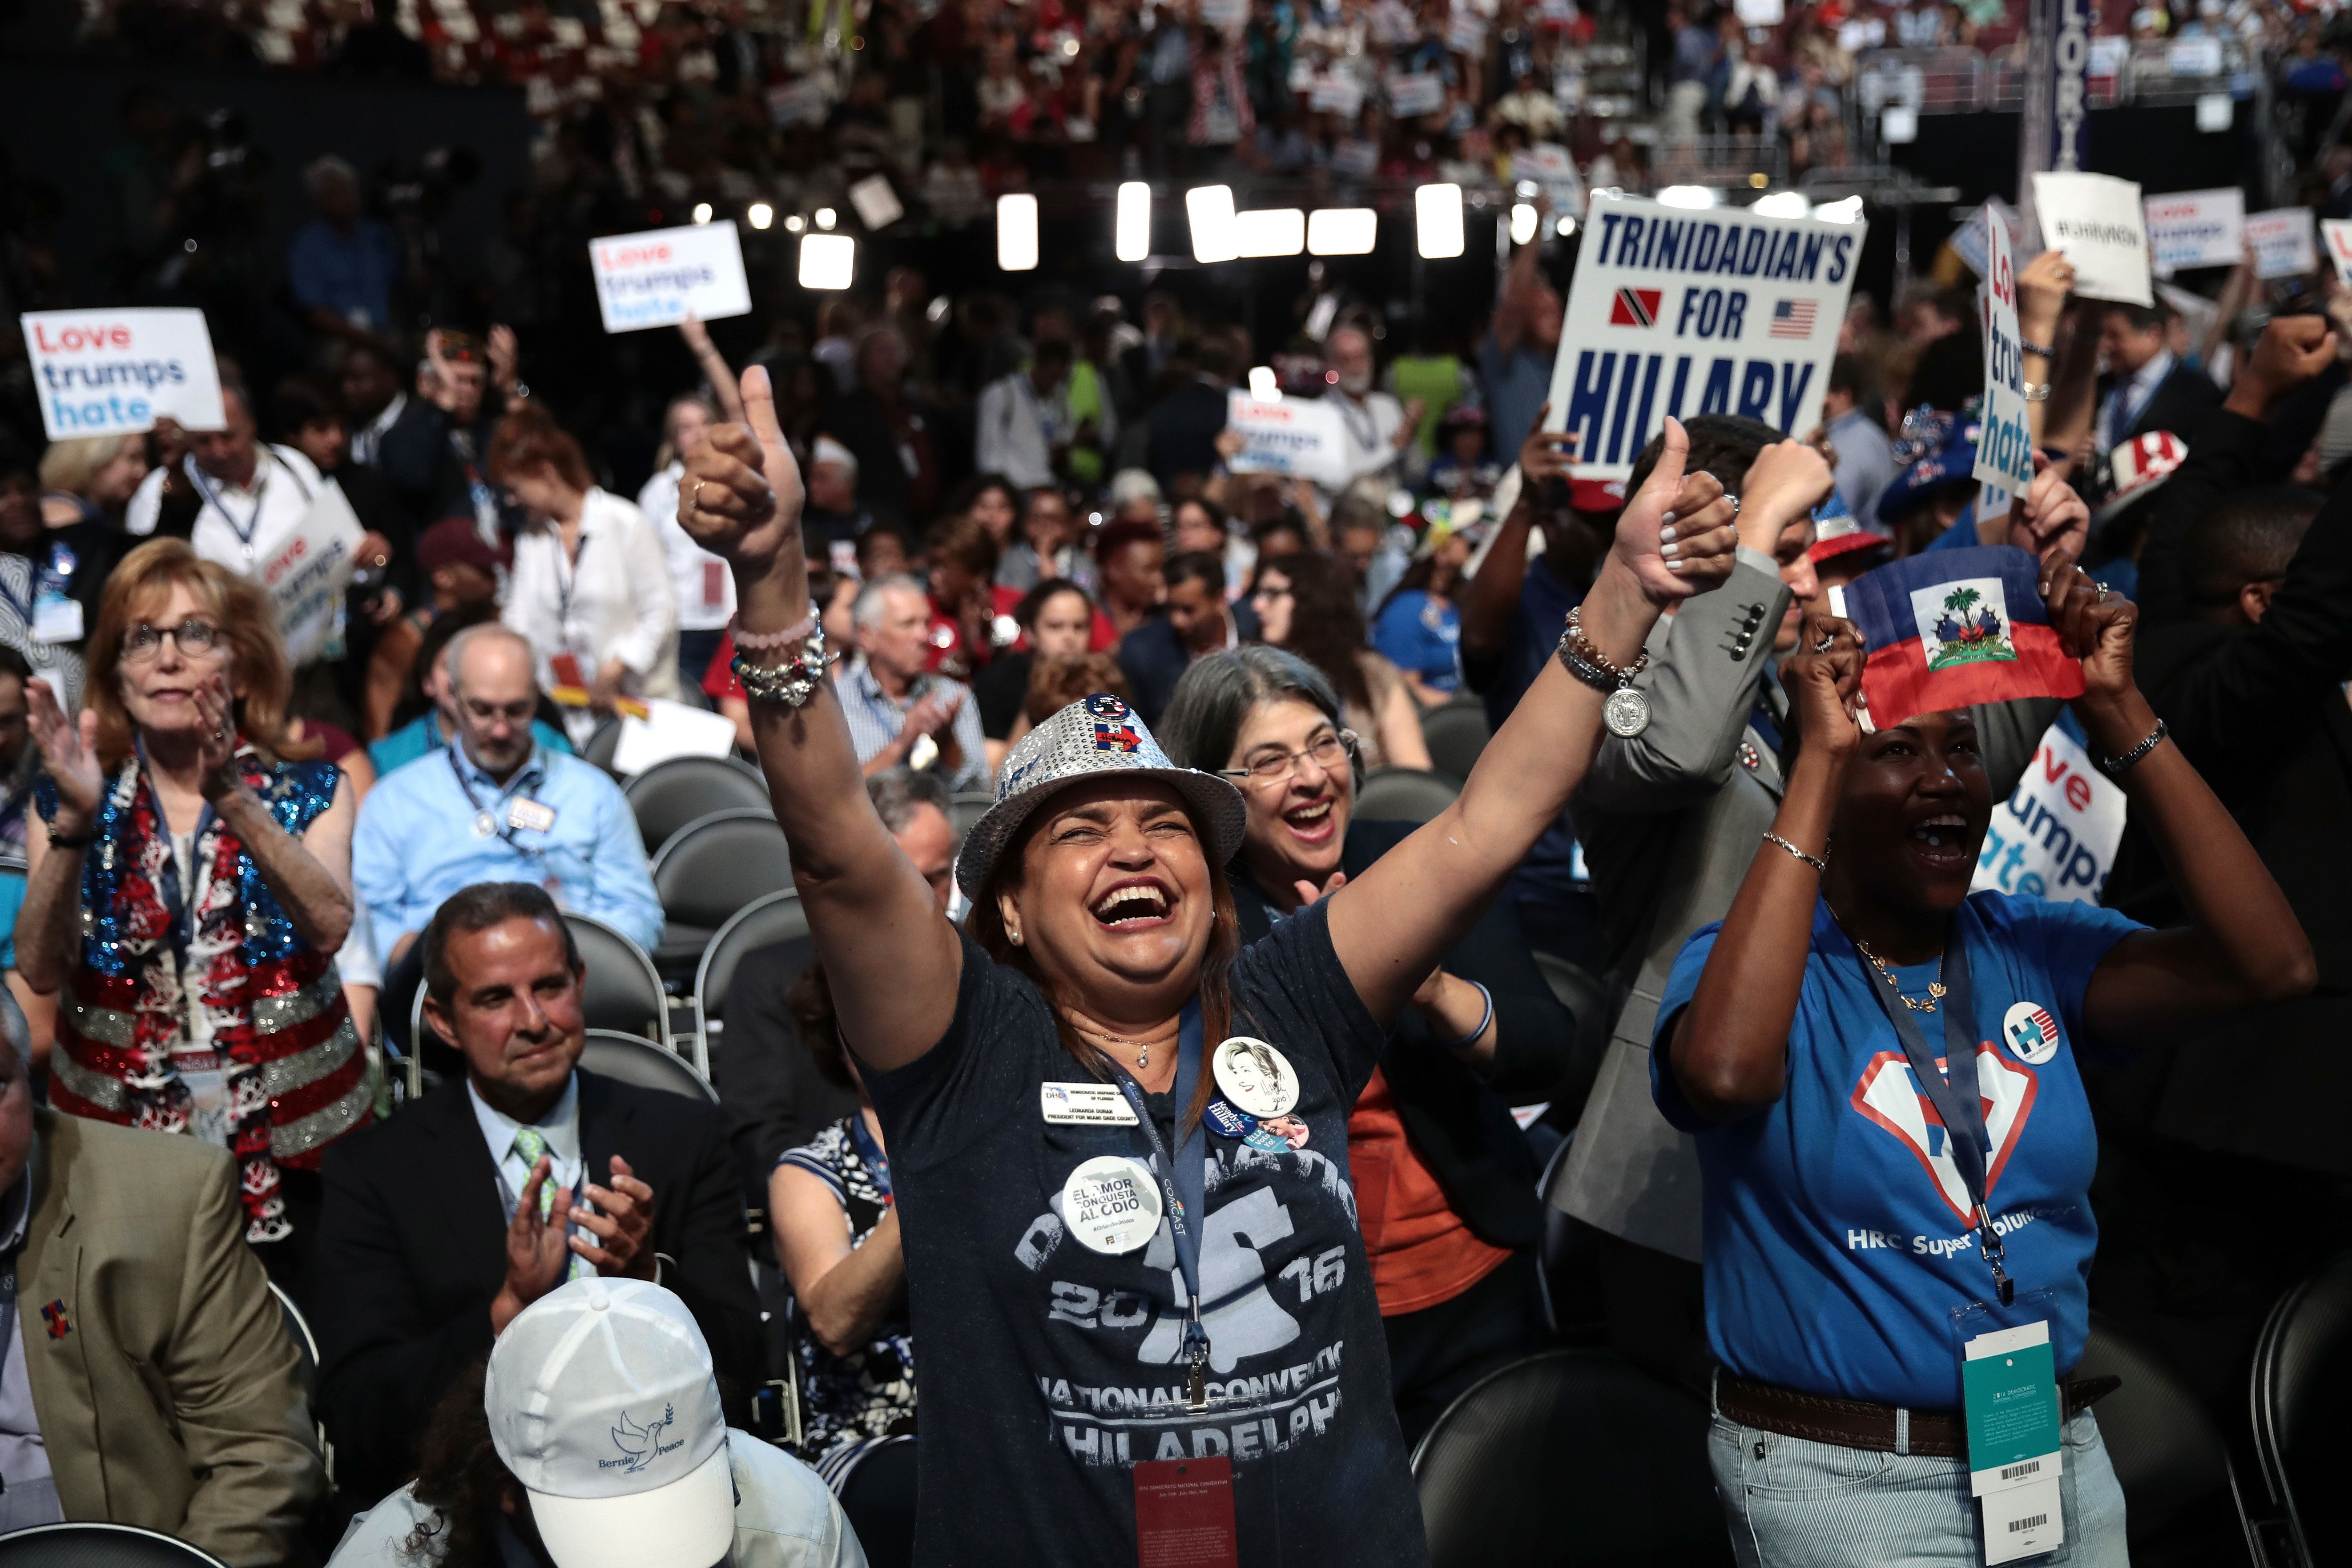 PHILADELPHIA, PA - JULY 25: Florida delegate Leonarda Duran cheers during the first day of the Democratic National Convention at the Wells Fargo Center, July 25, 2016 in Philadelphia, Pennsylvania. An estimated 50,000 people are expected in Philadelphia, including hundreds of protesters and members of the media. The four-day Democratic National Convention kicked off July 25. (Photo by Drew Angerer/Getty Images)